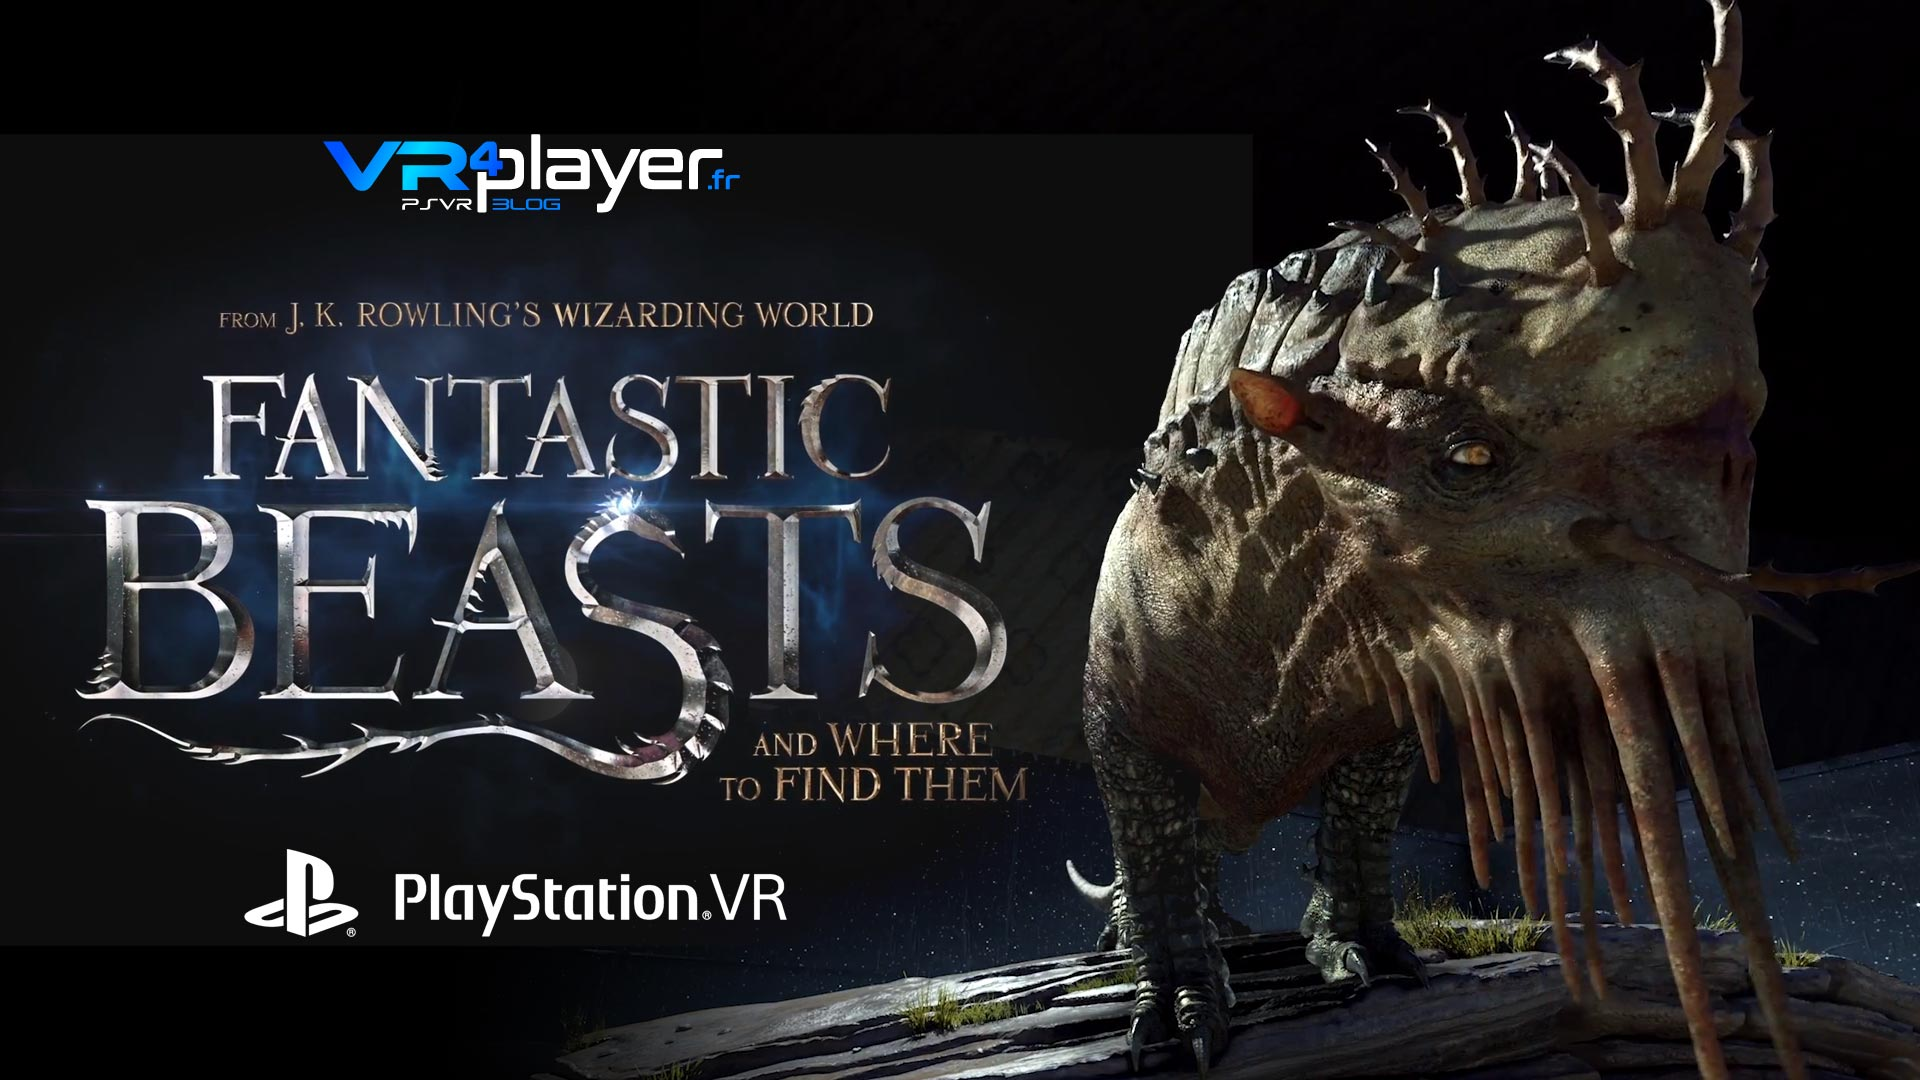 Fantastic Beasts, VR4player